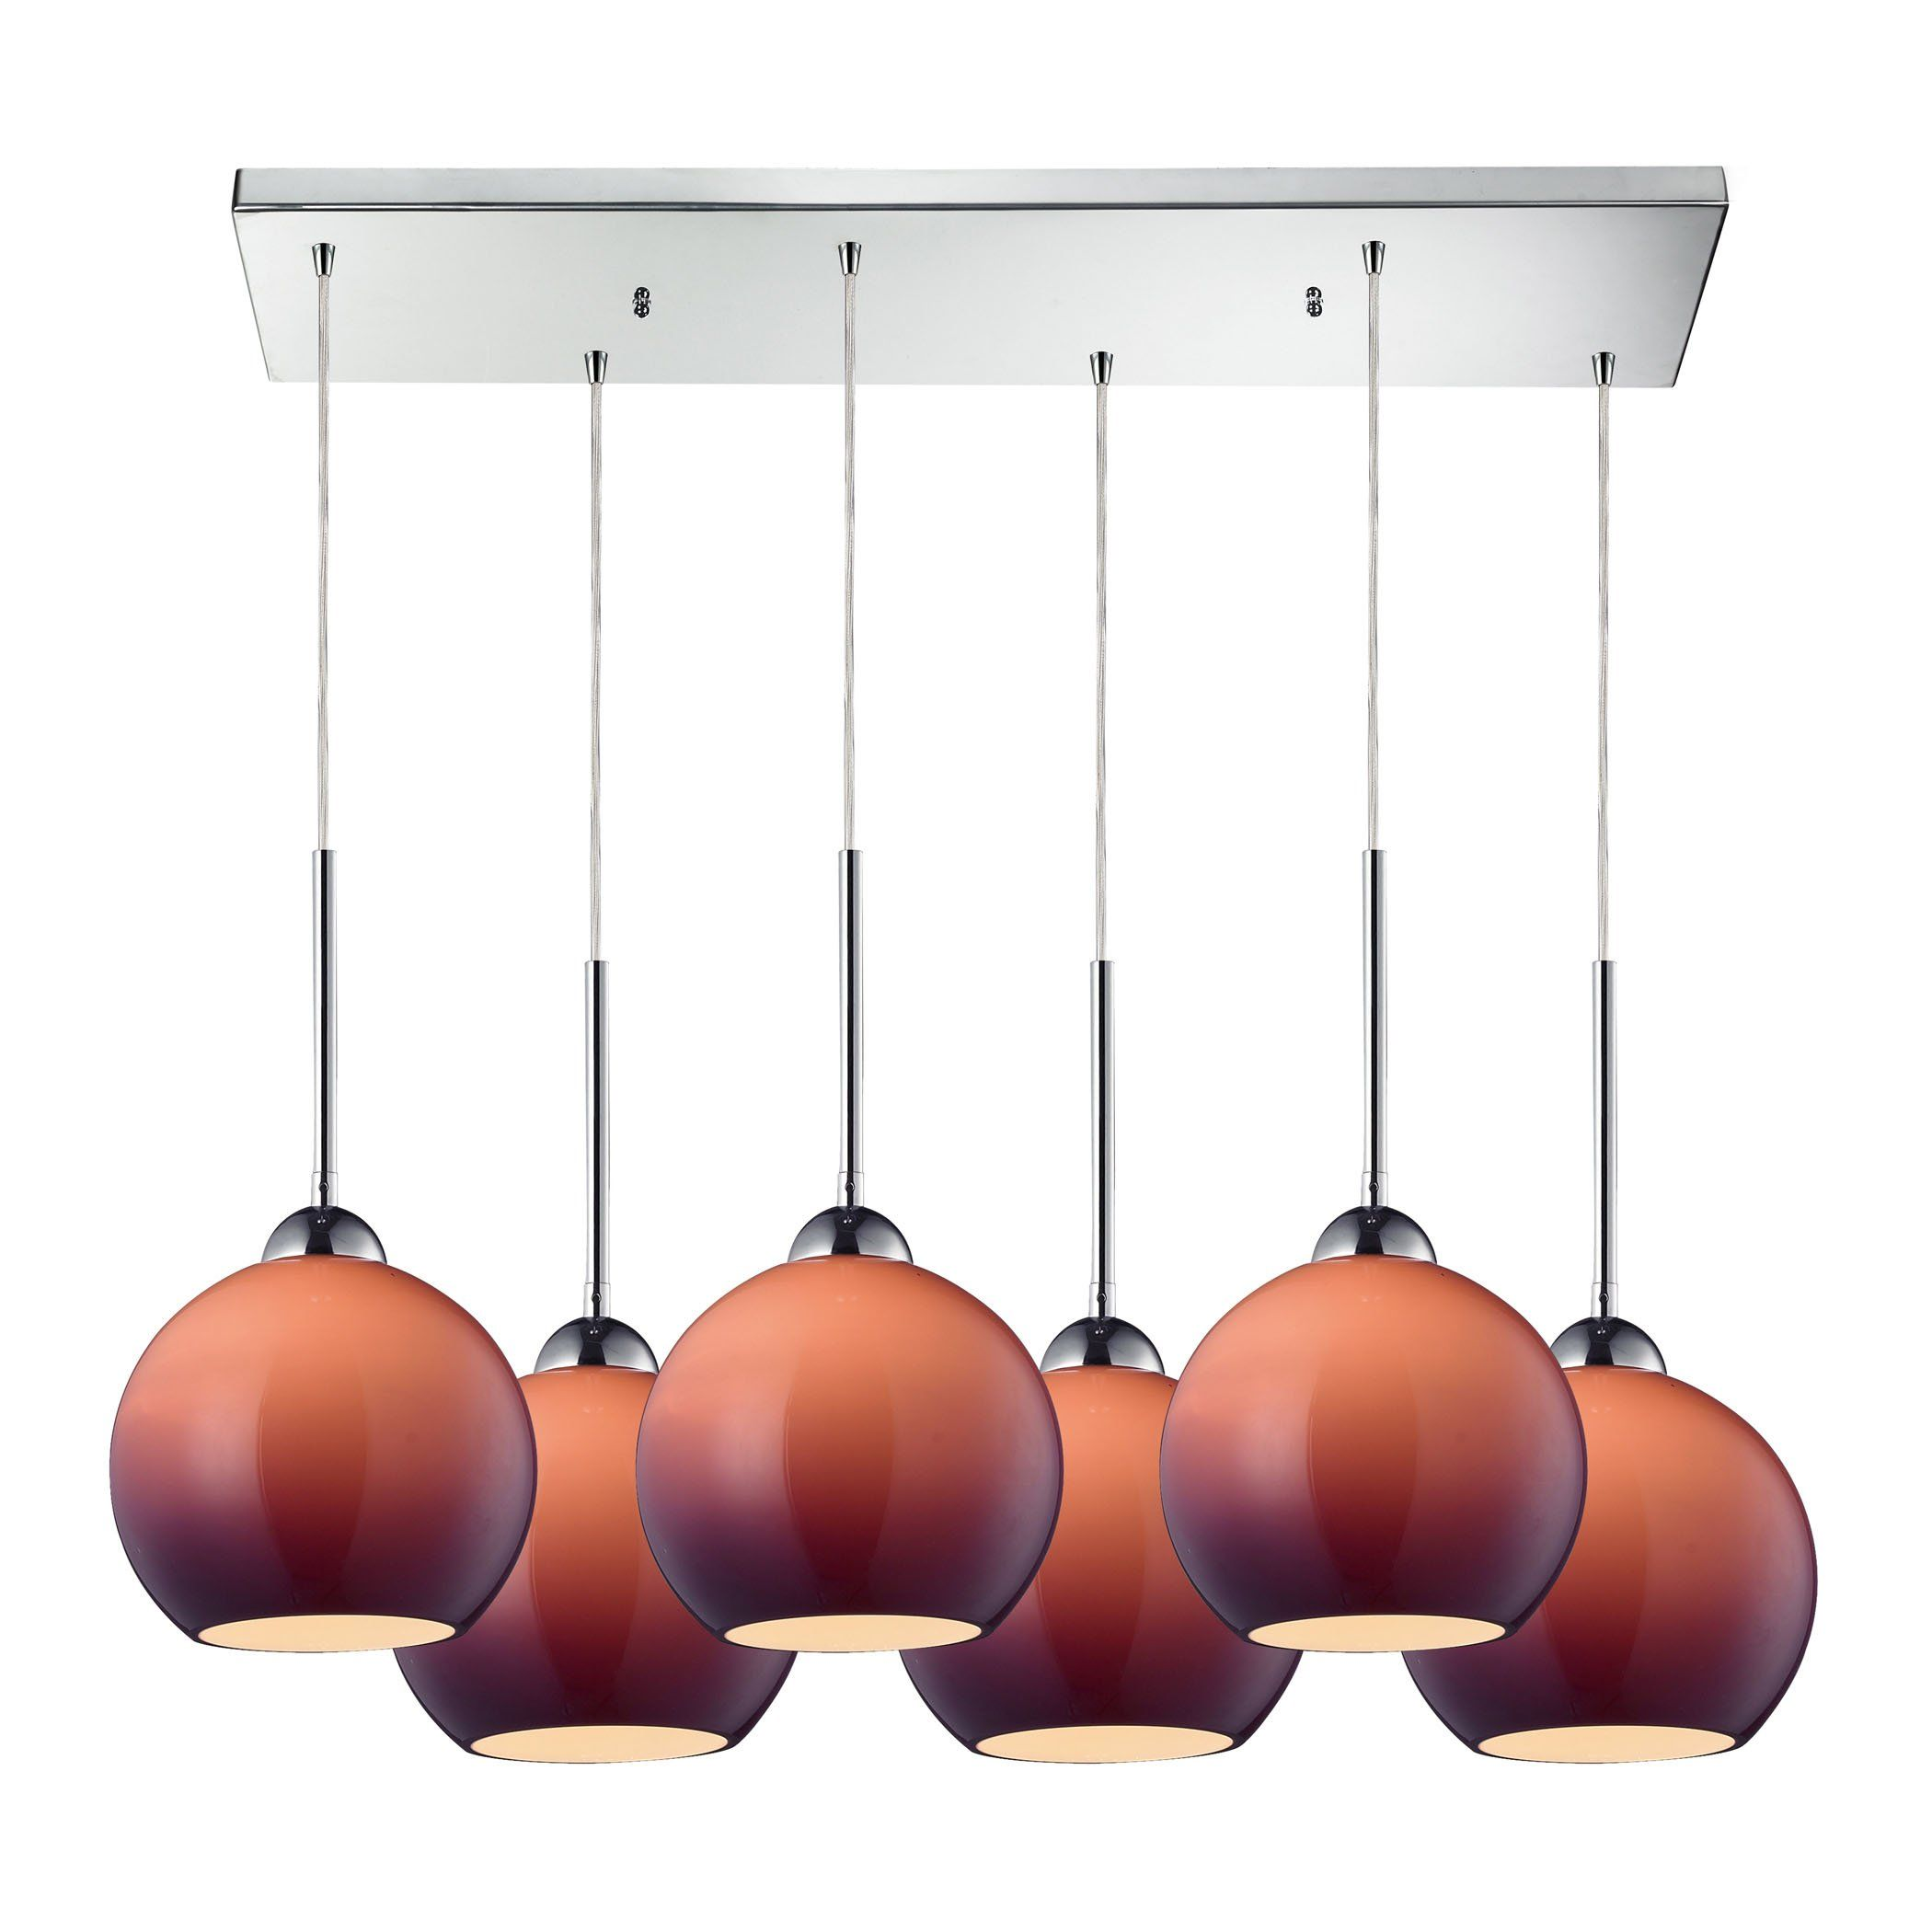 Elk lighting cassandra light pendant in polished chrome and purple